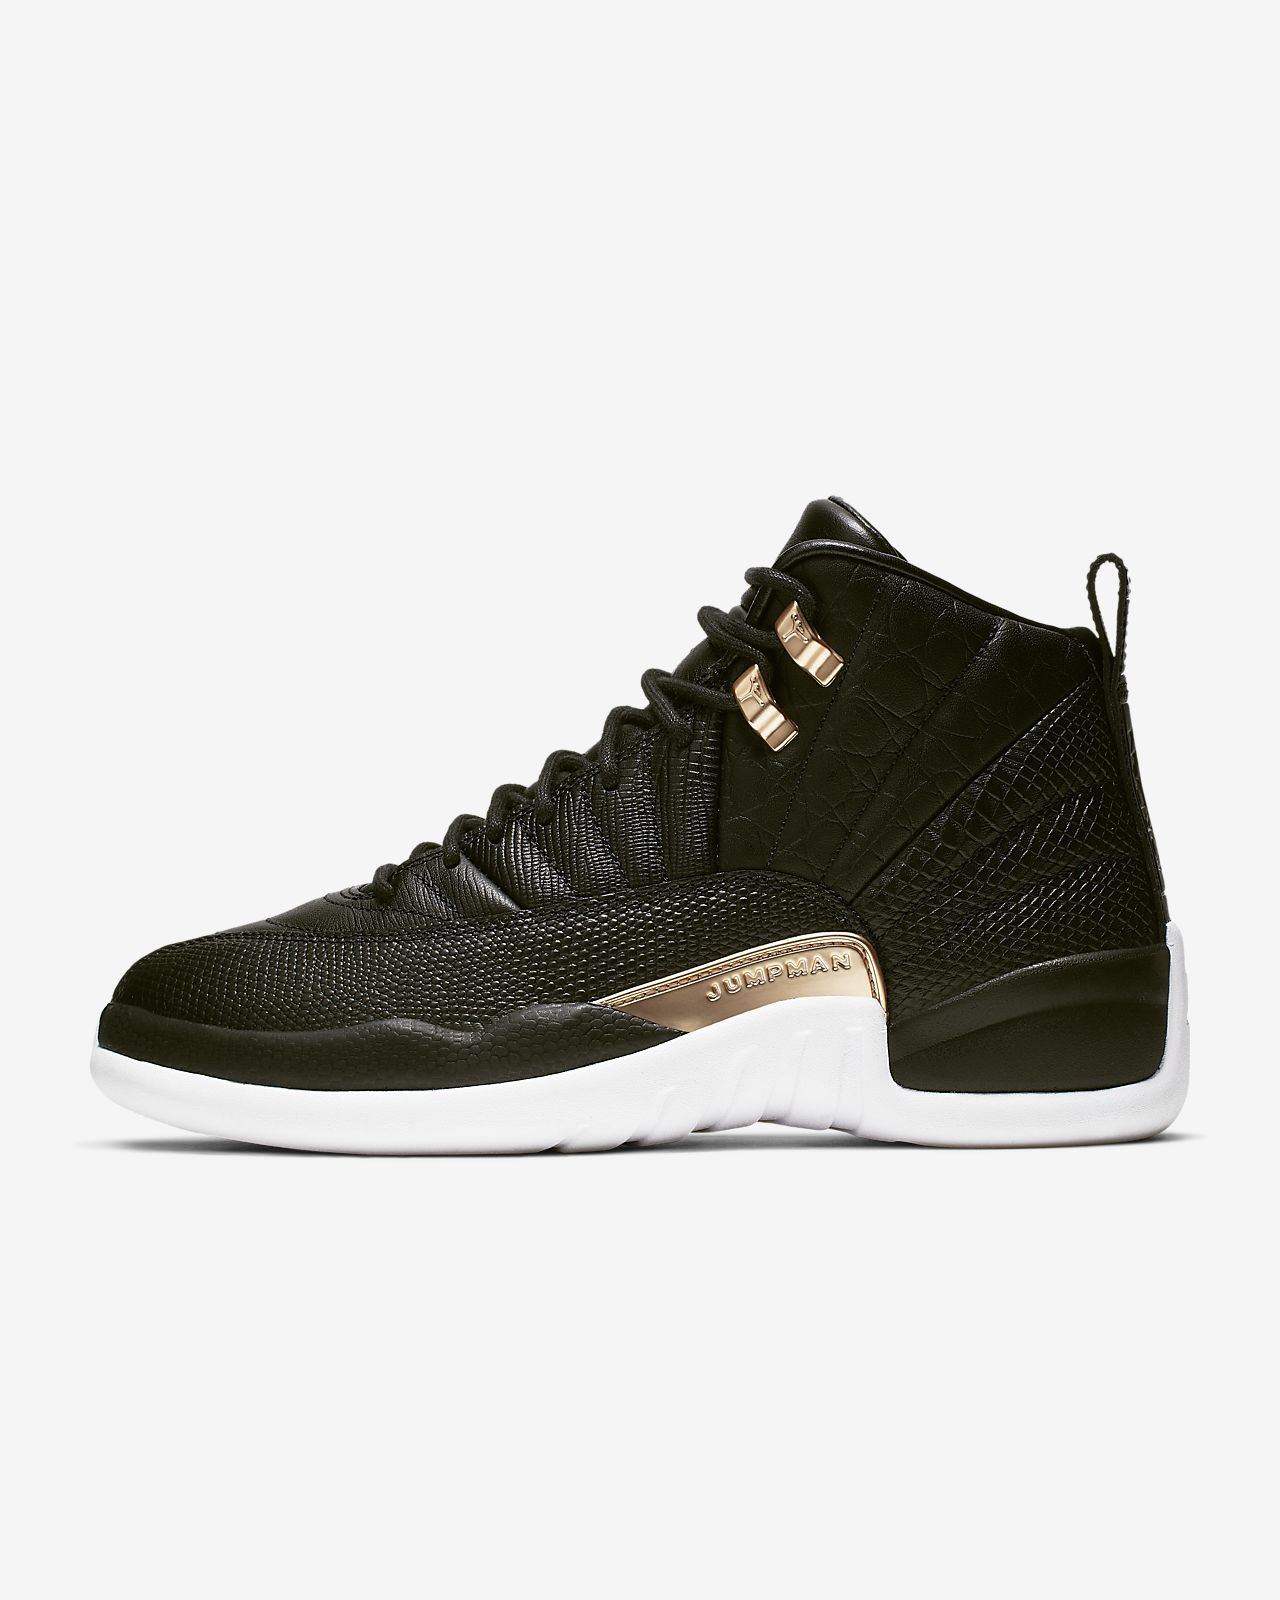 b11a4f3ede3 Air Jordan 12 Retro Women's Shoe. Nike.com AU